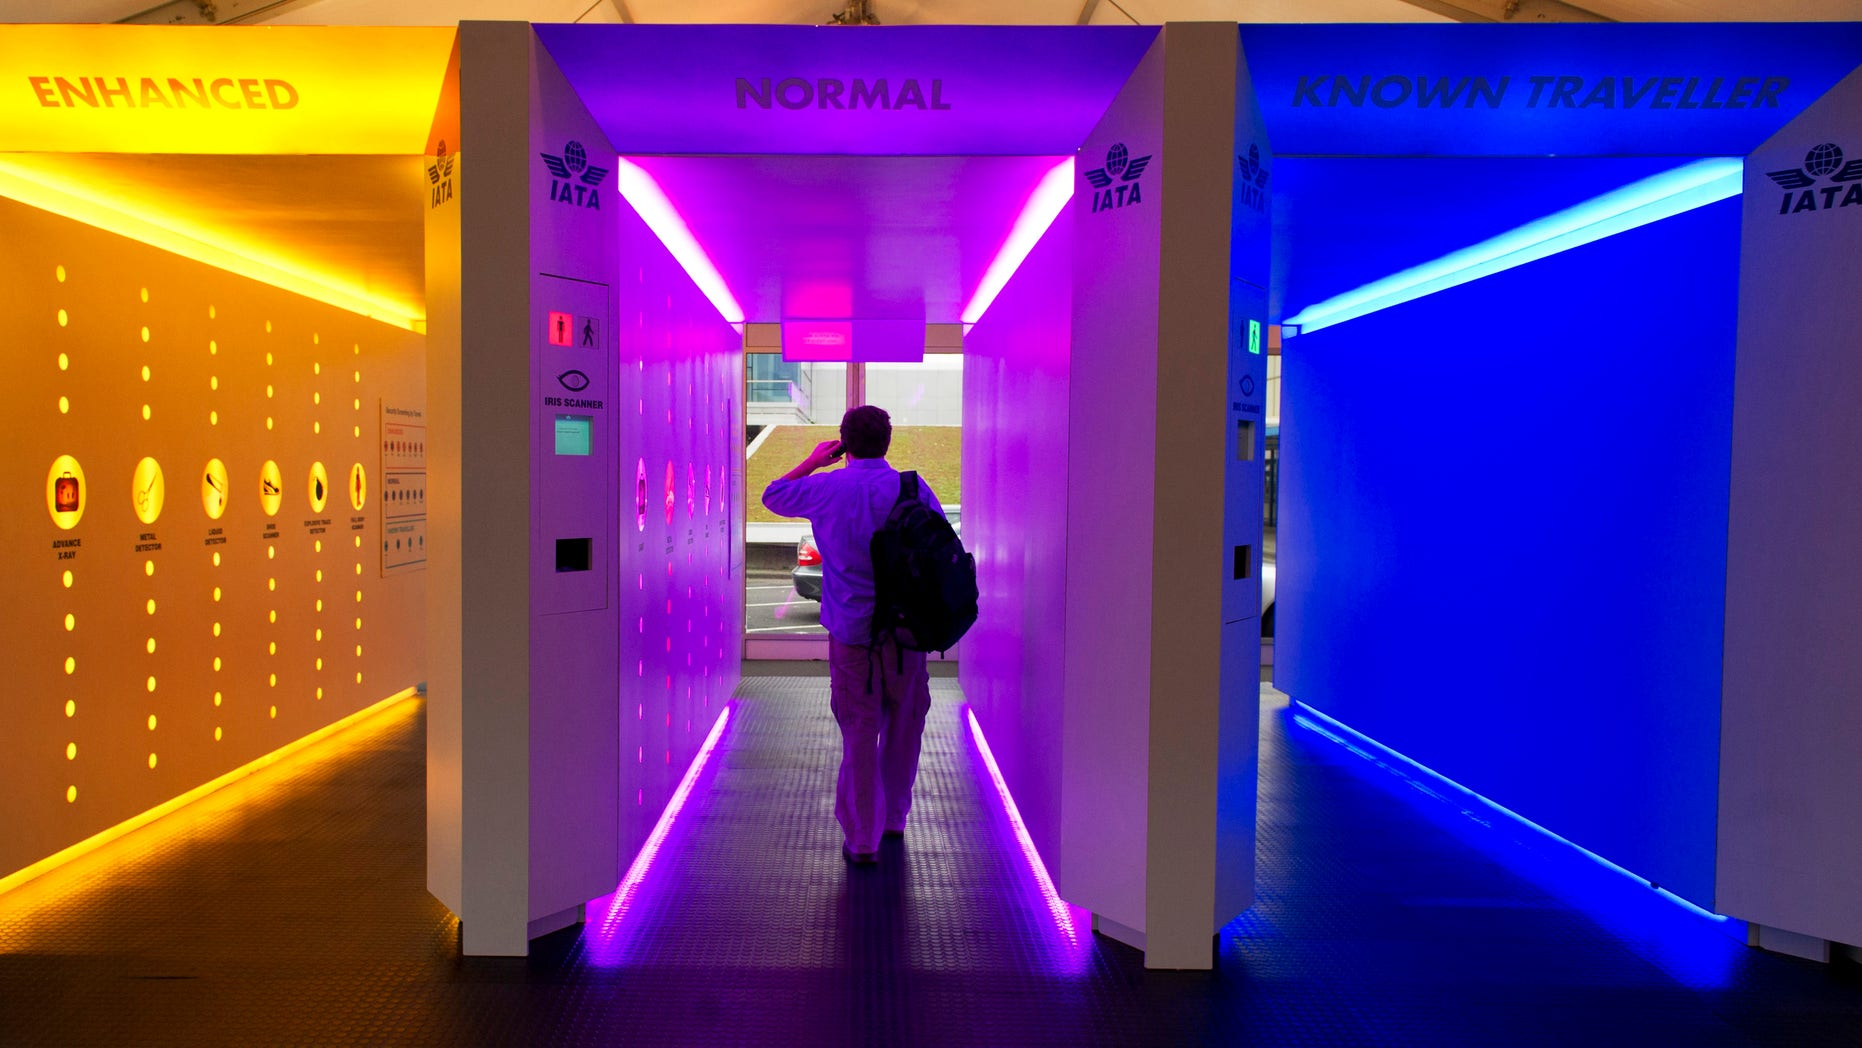 A person walks through a model of a scanning corridor at the International Air Transport Association Aviation Security (IATA AVSEC) conference in Amsterdam, Netherlands, Tuesday, Oct. 4, 2011. The airline industry has presented its vision for a security 'checkpoint of the future,' which would speed up safety checks by sorting passengers according to the level of risk they pose.